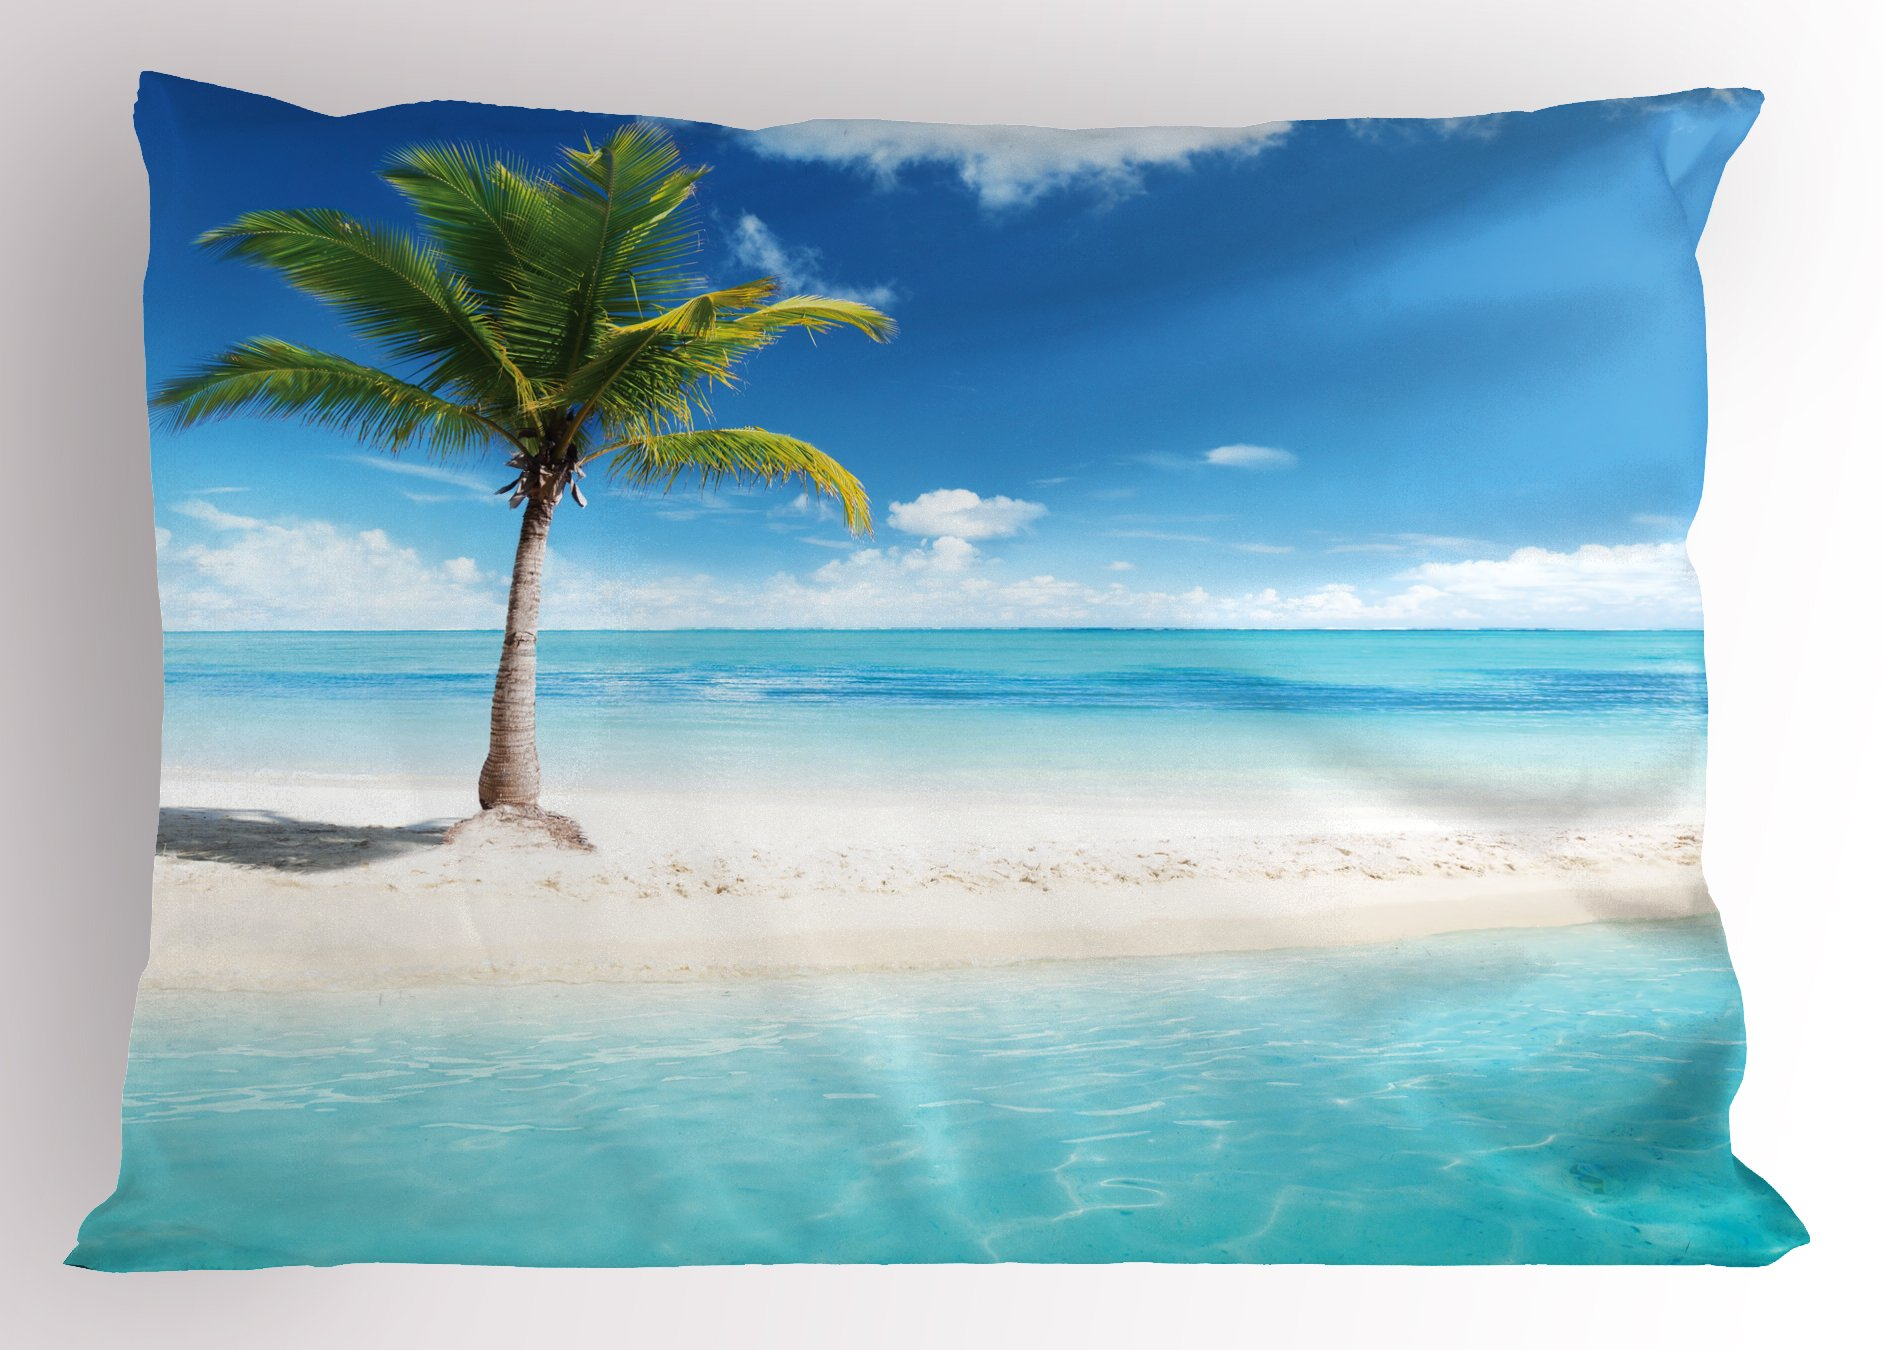 Ambesonne Ocean Pillow Sham, Idyllic Scenery Seashore Picture Sunlights View with Palm Tree Tropical Beach, Decorative Standard Queen Size Printed Pillowcase, 30 X 20 inches, Aqua White Green